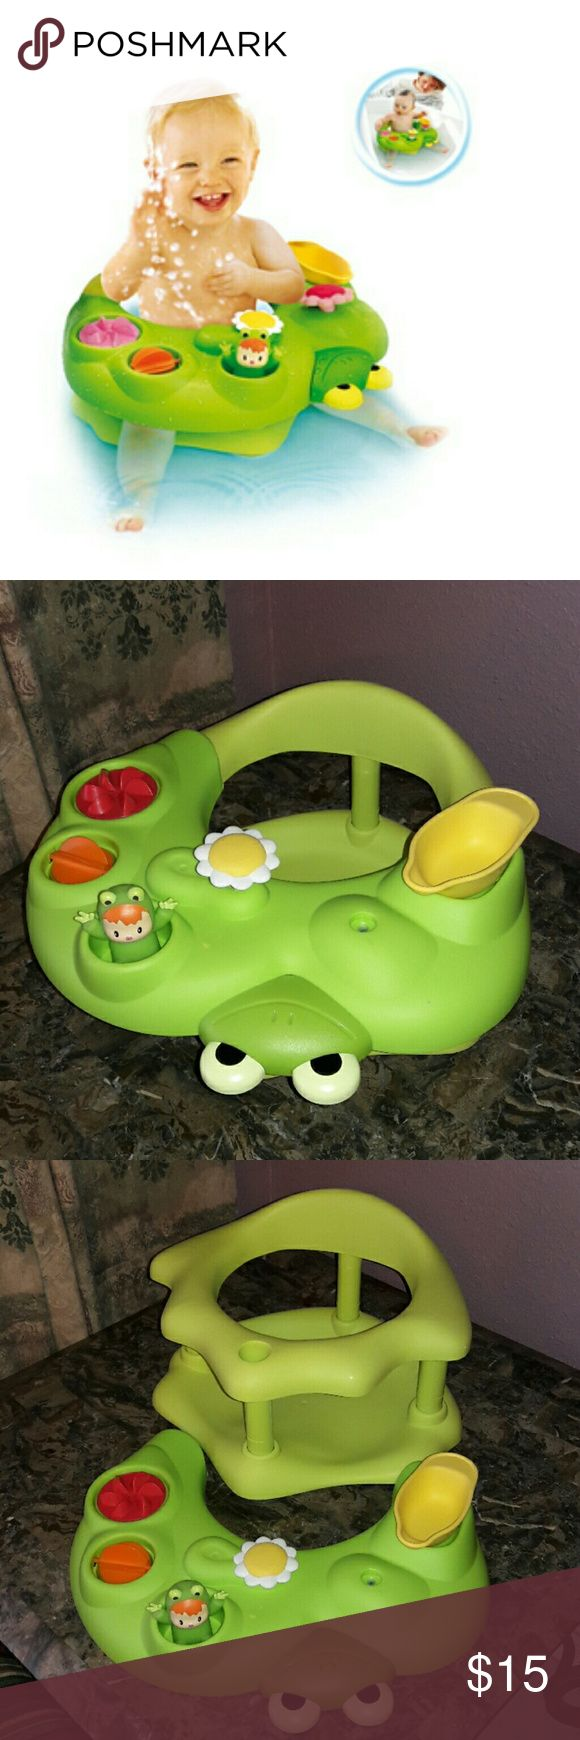 Smoby Baby Bath Seat. In good used condition. Smoby Other